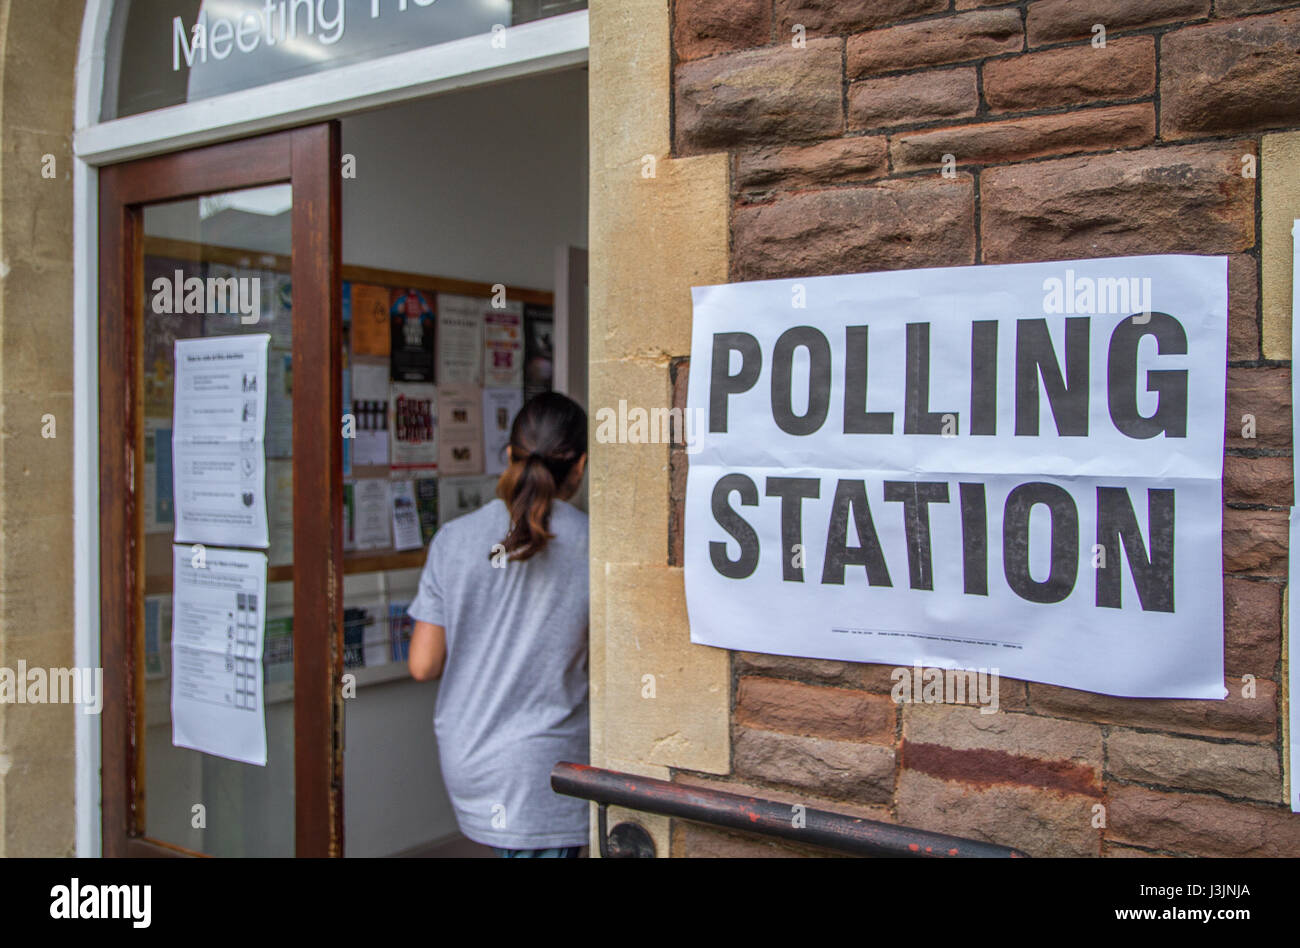 General election polling poll station sign - Stock Image